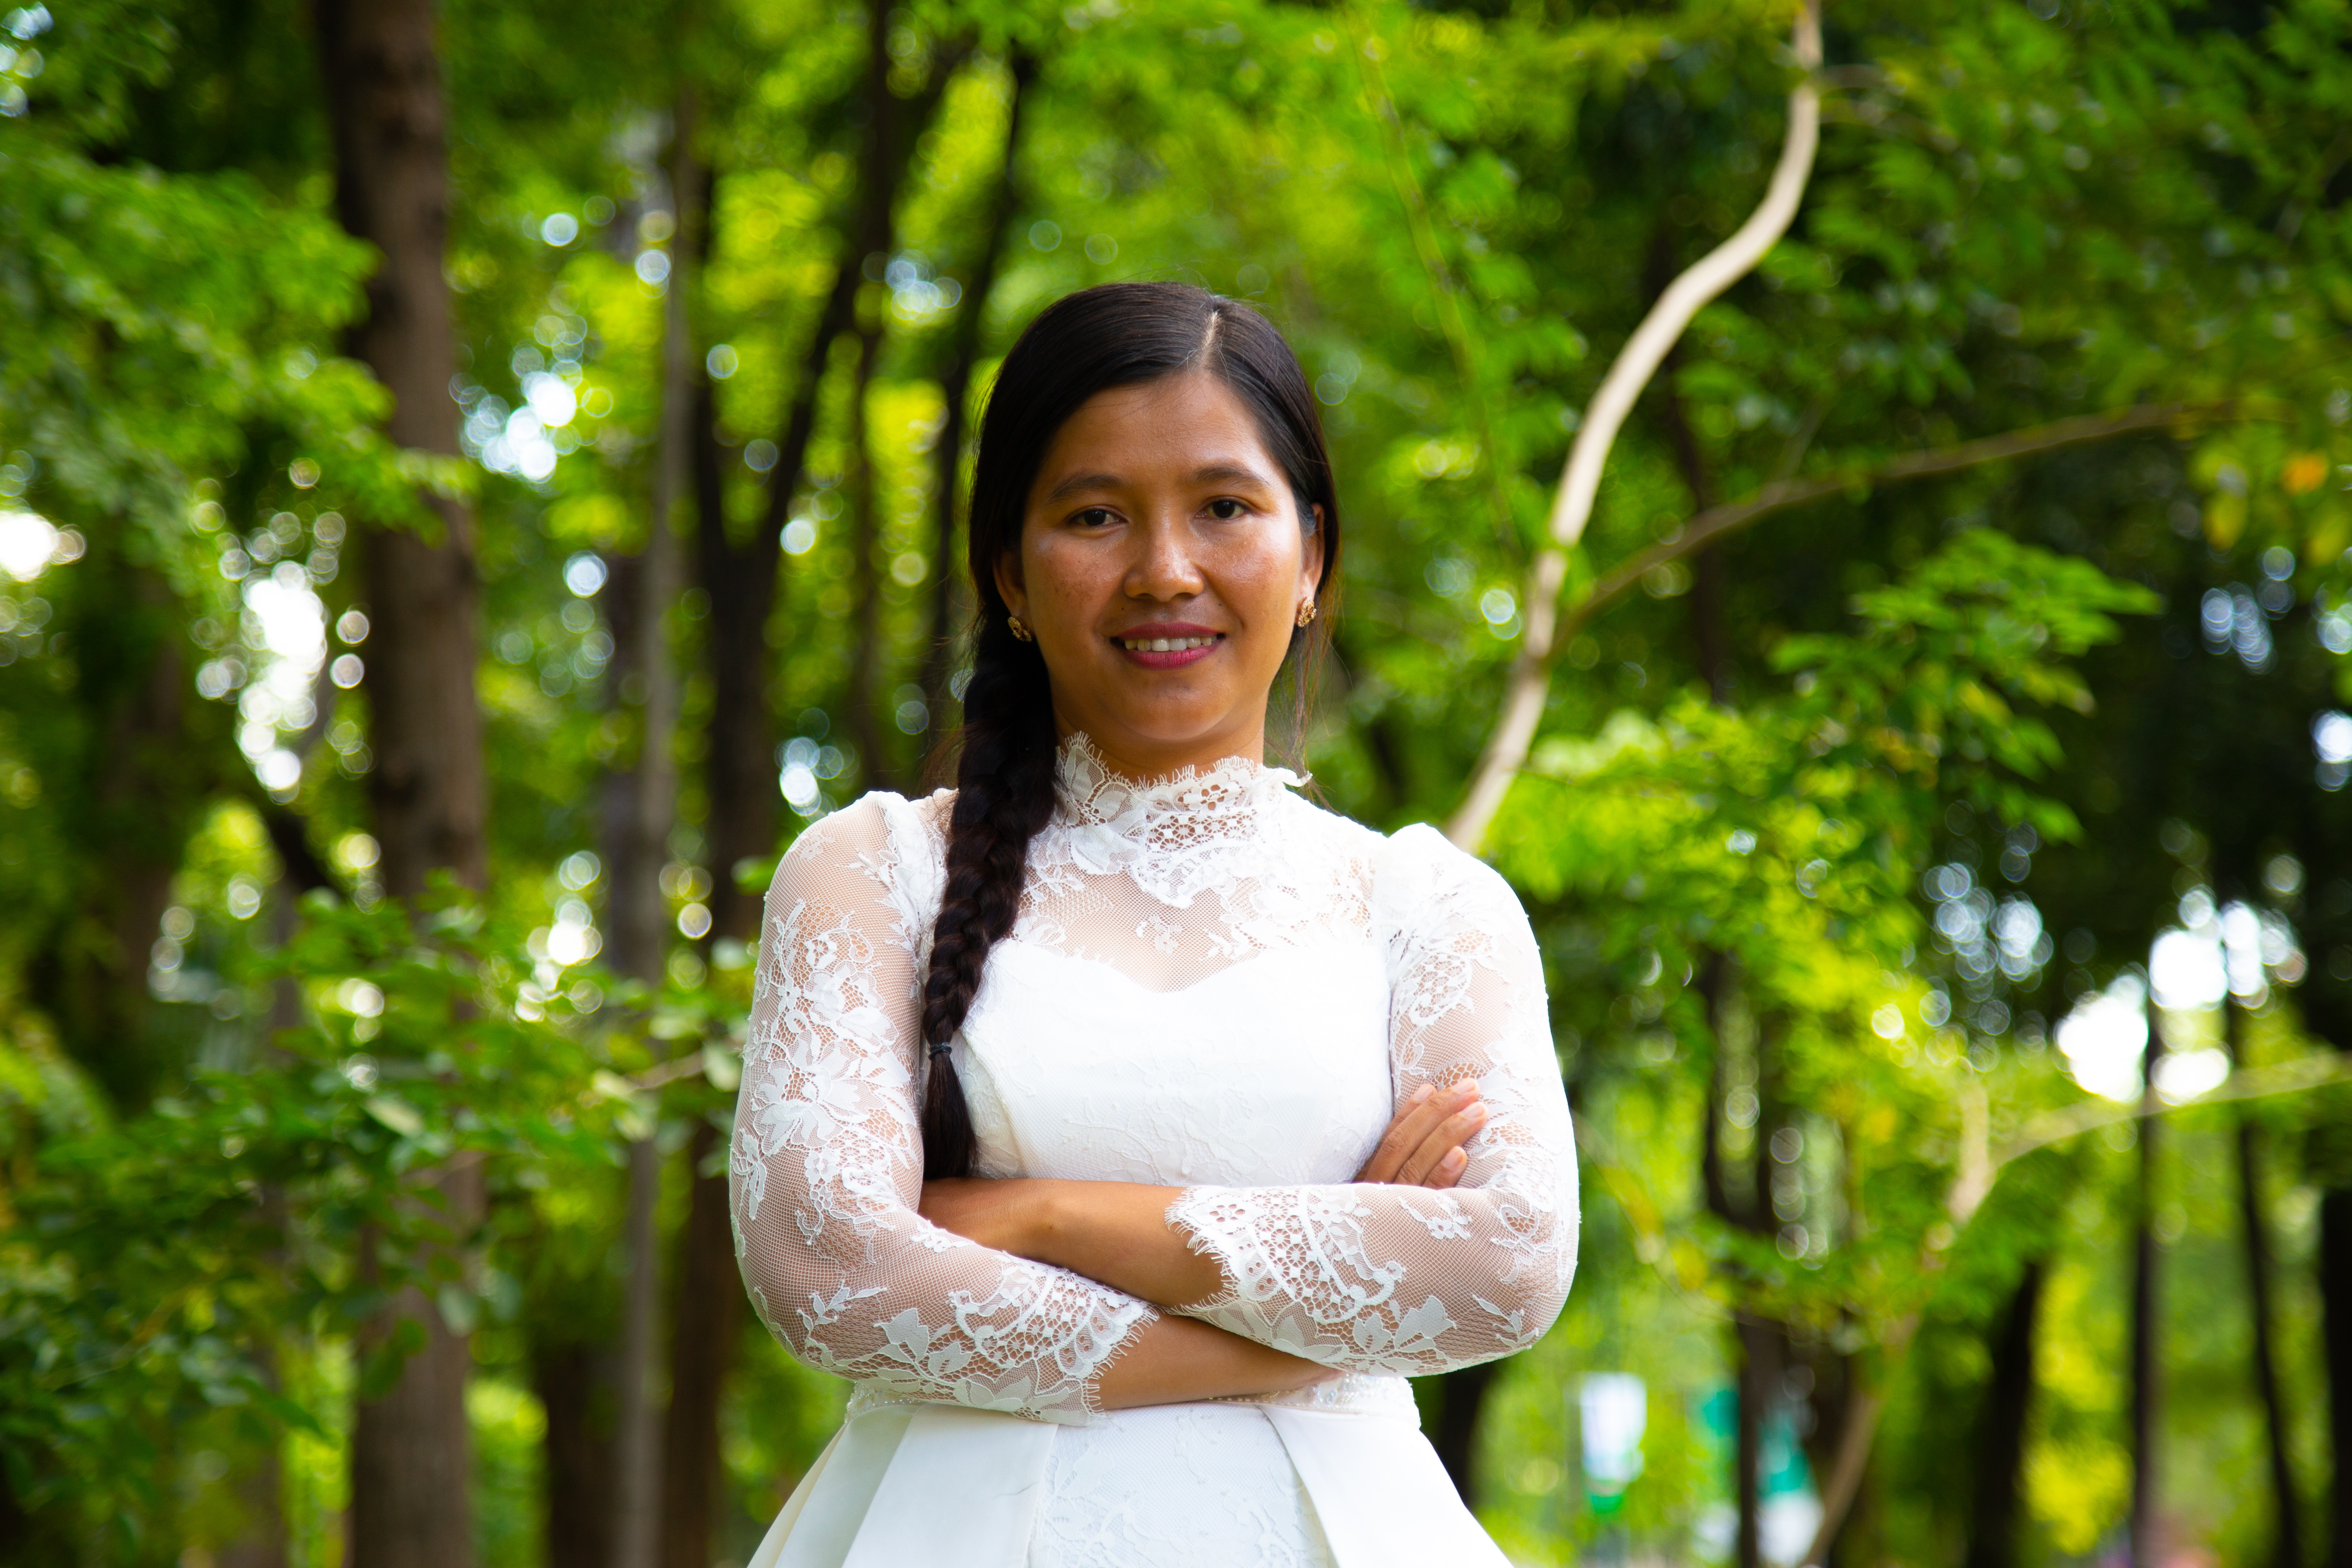 Chan Kanha (pictured), the District Deputy Governor in Kampot Krong, is an advocate for women's voices in disaster risk reduction (DRR).